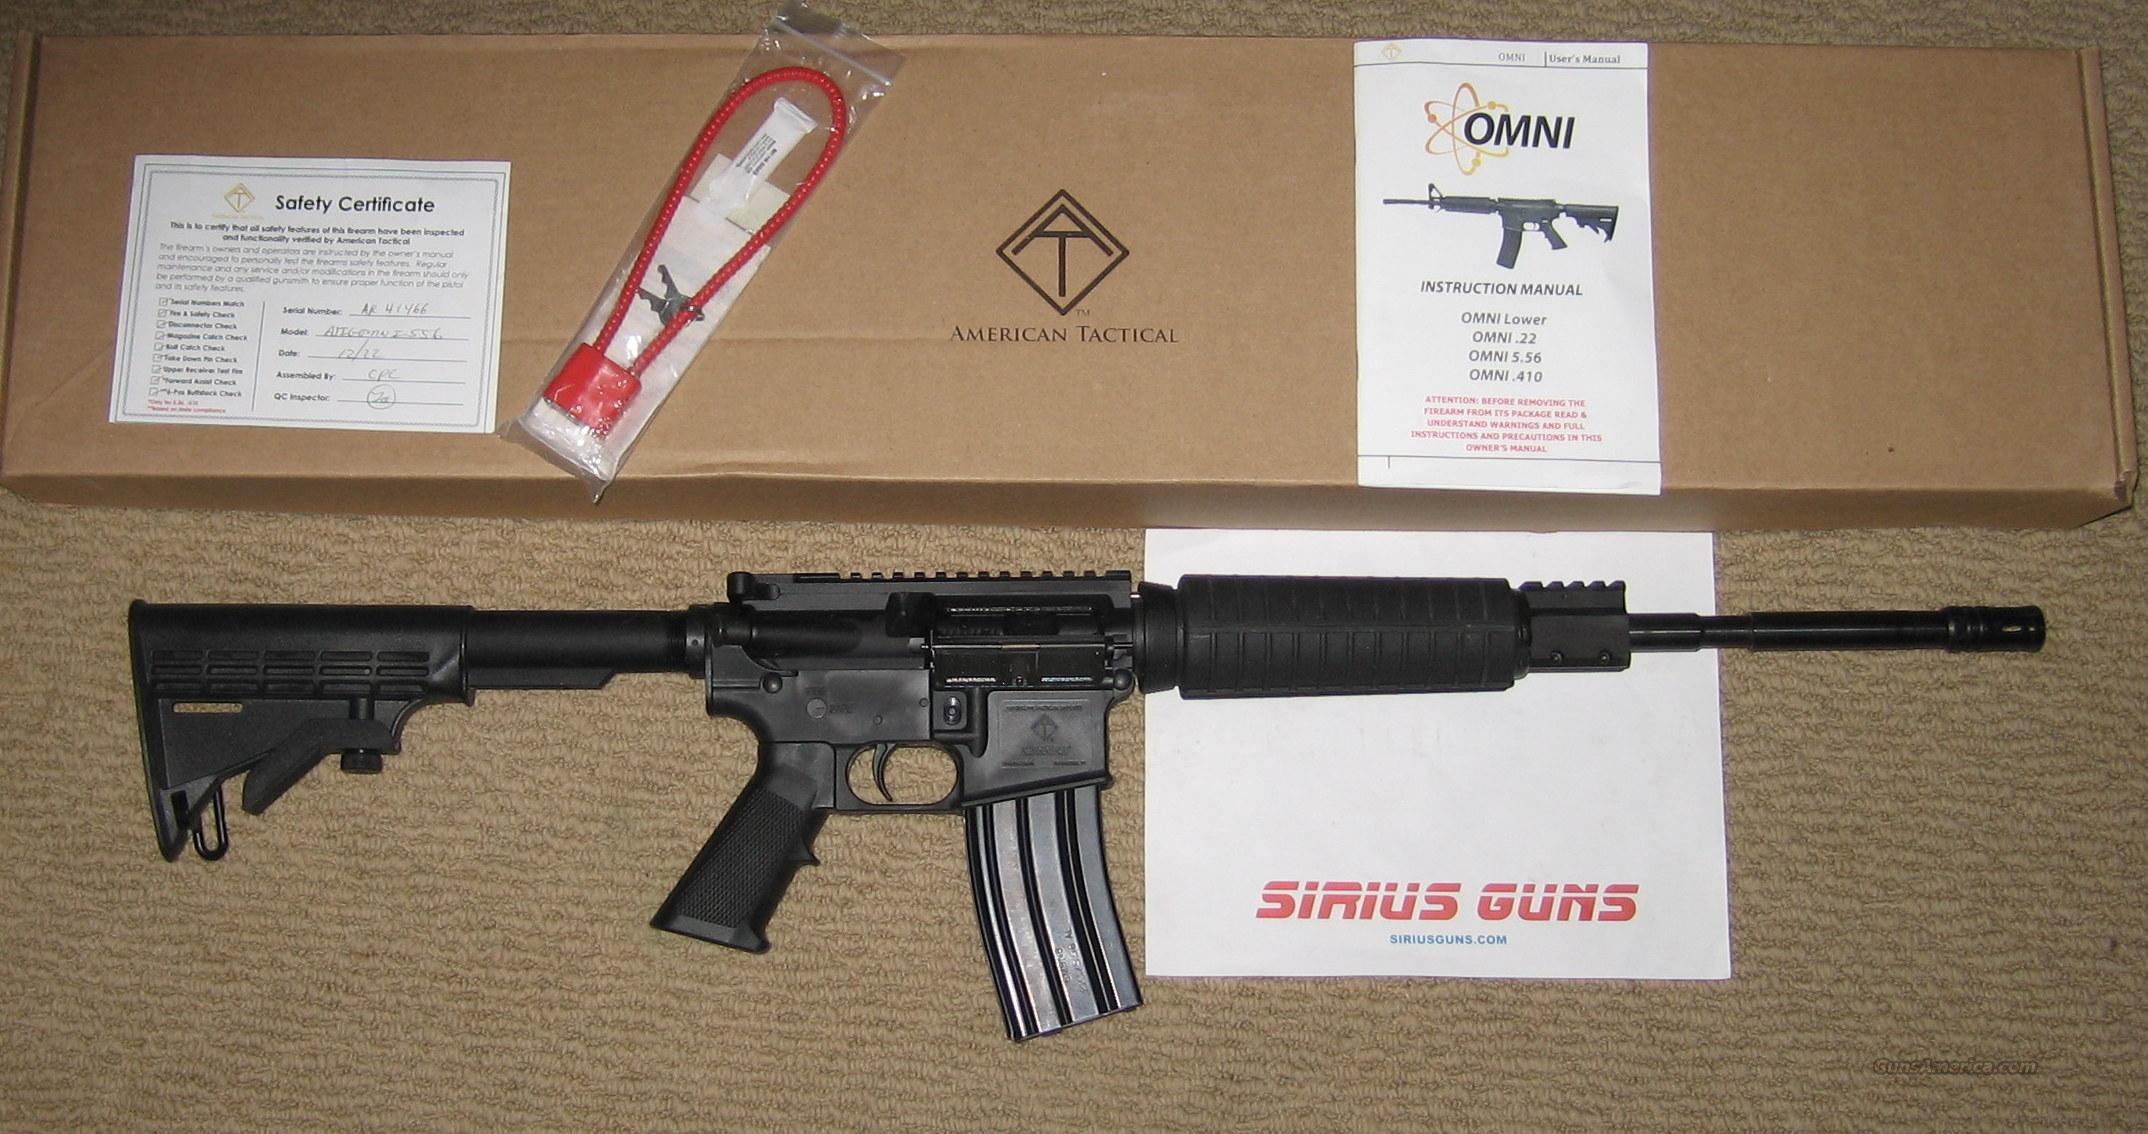 American Tactical AR15 OMNI Poly M4 AR-15  Guns > Rifles > AR-15 Rifles - Small Manufacturers > Complete Rifle